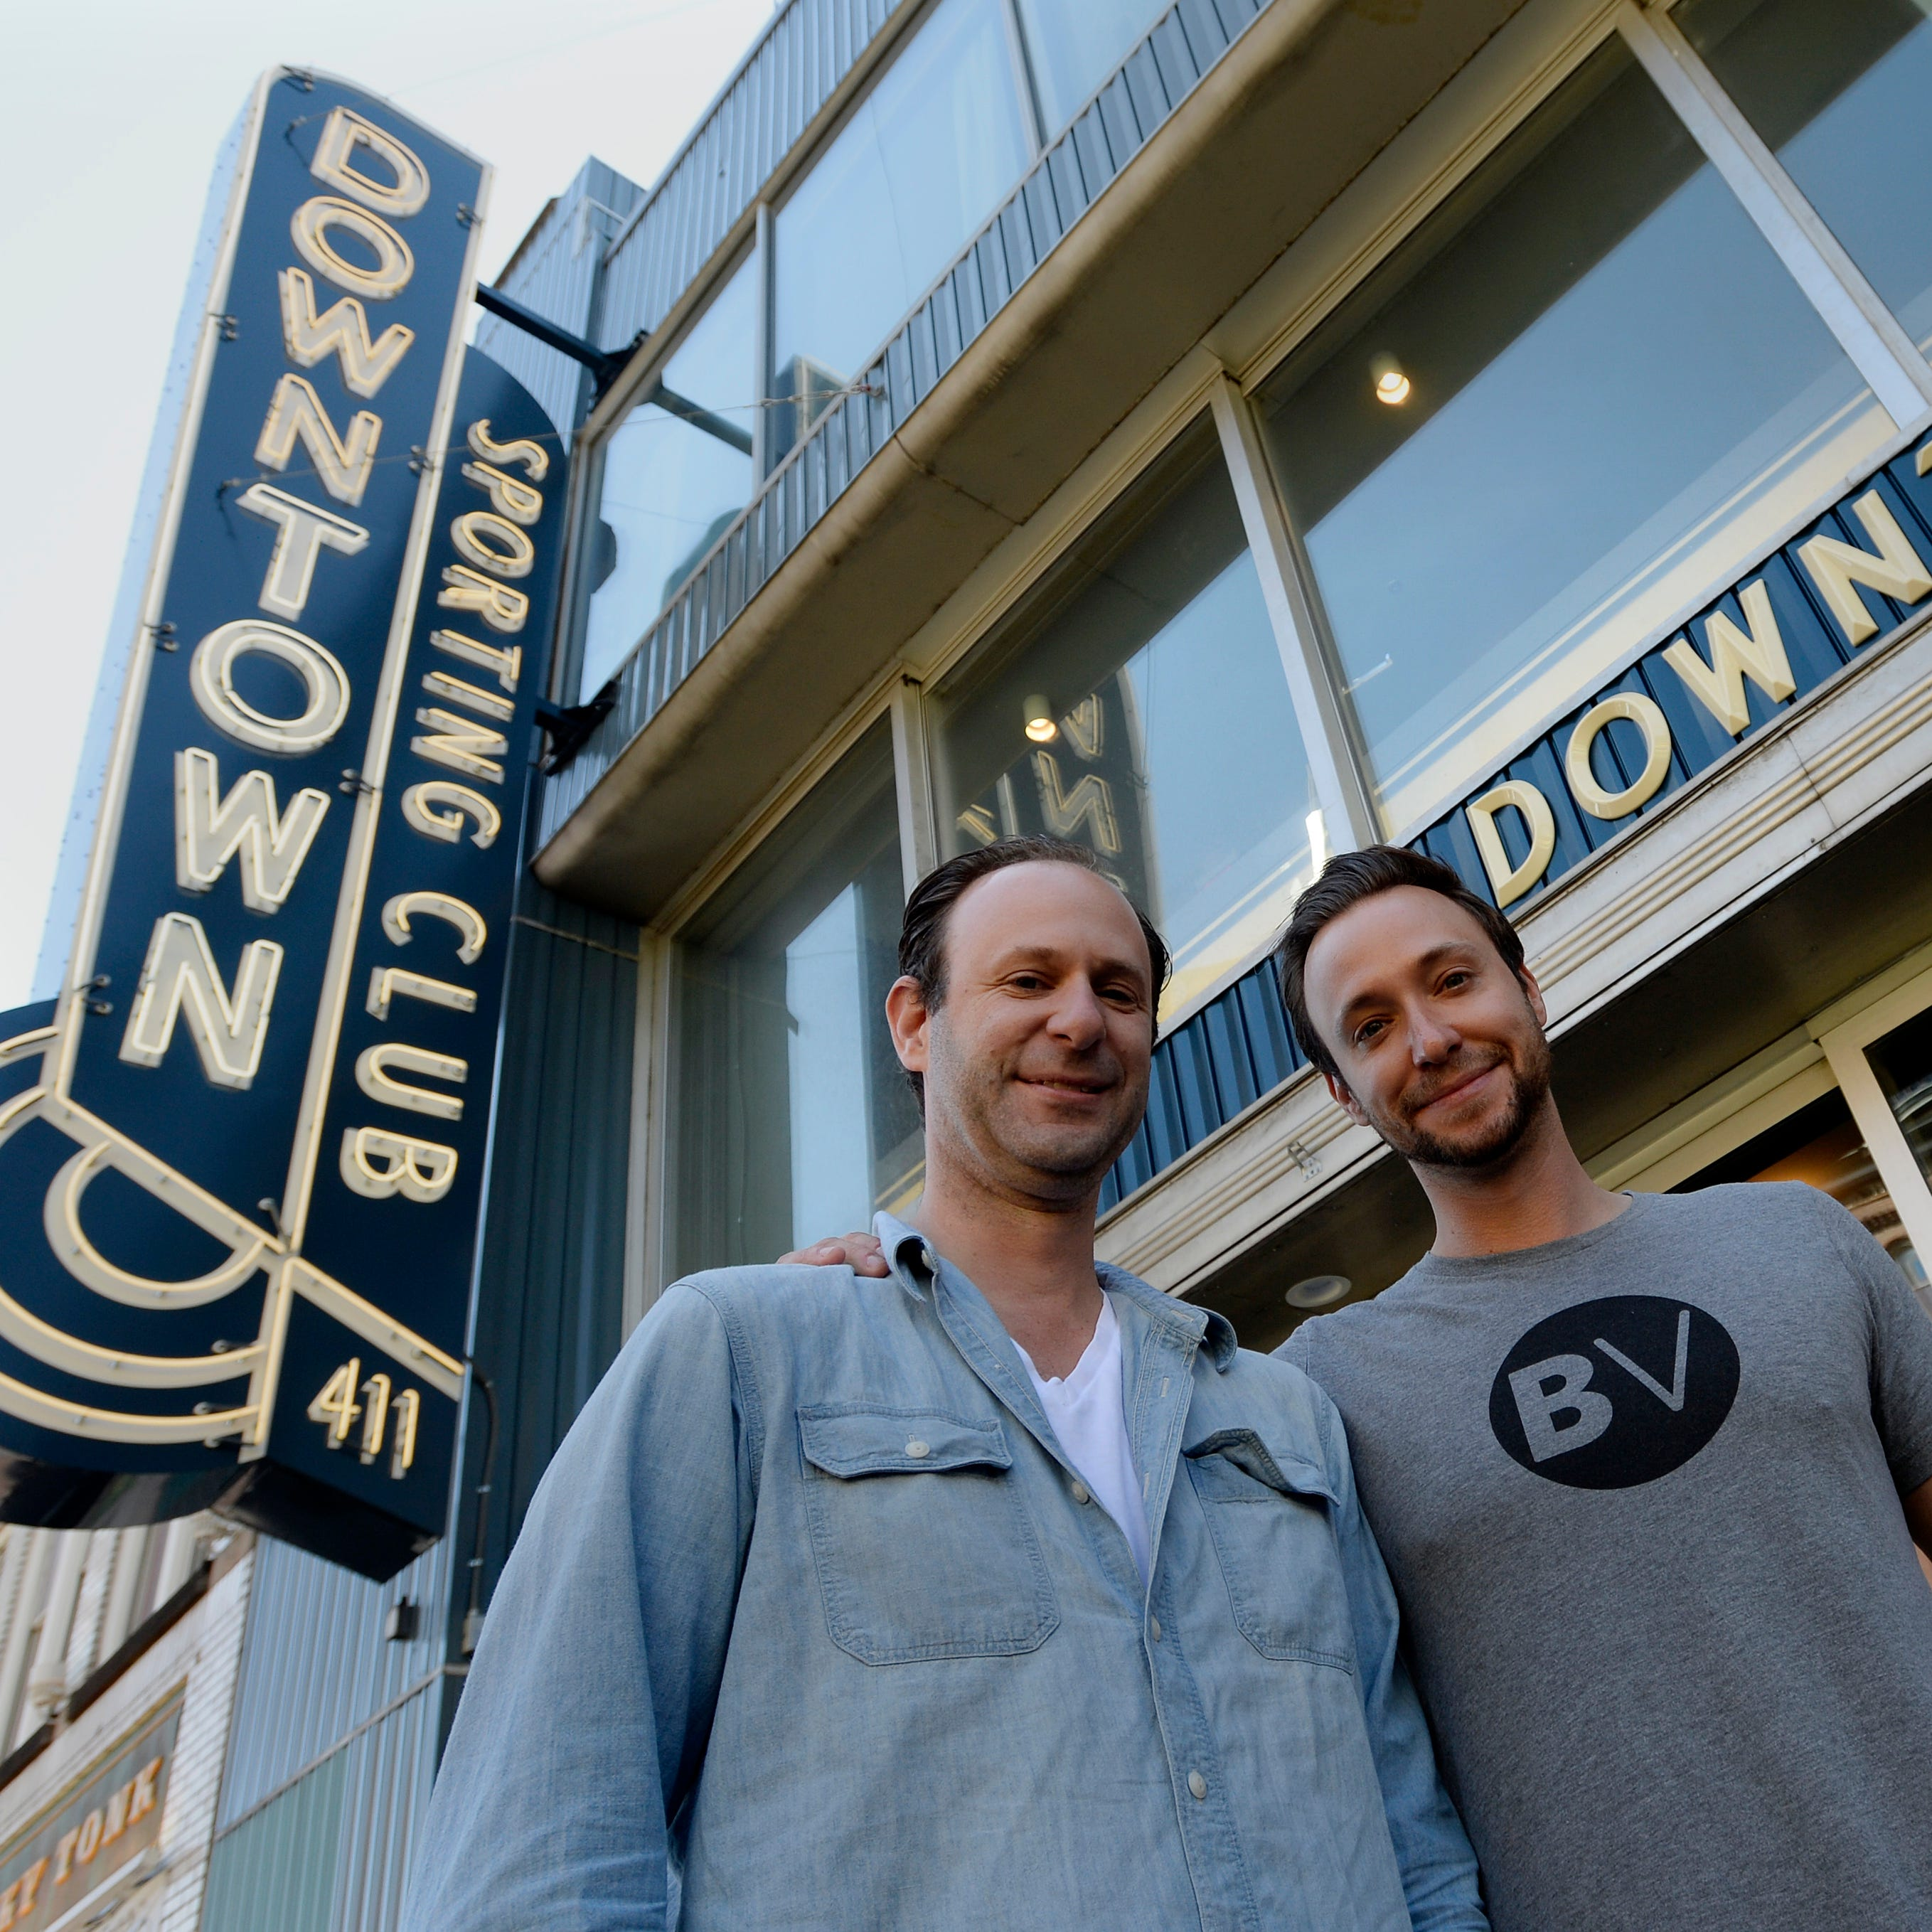 Downtown Sporting Club is unlike anything else on Lower Broadway. Here's why.